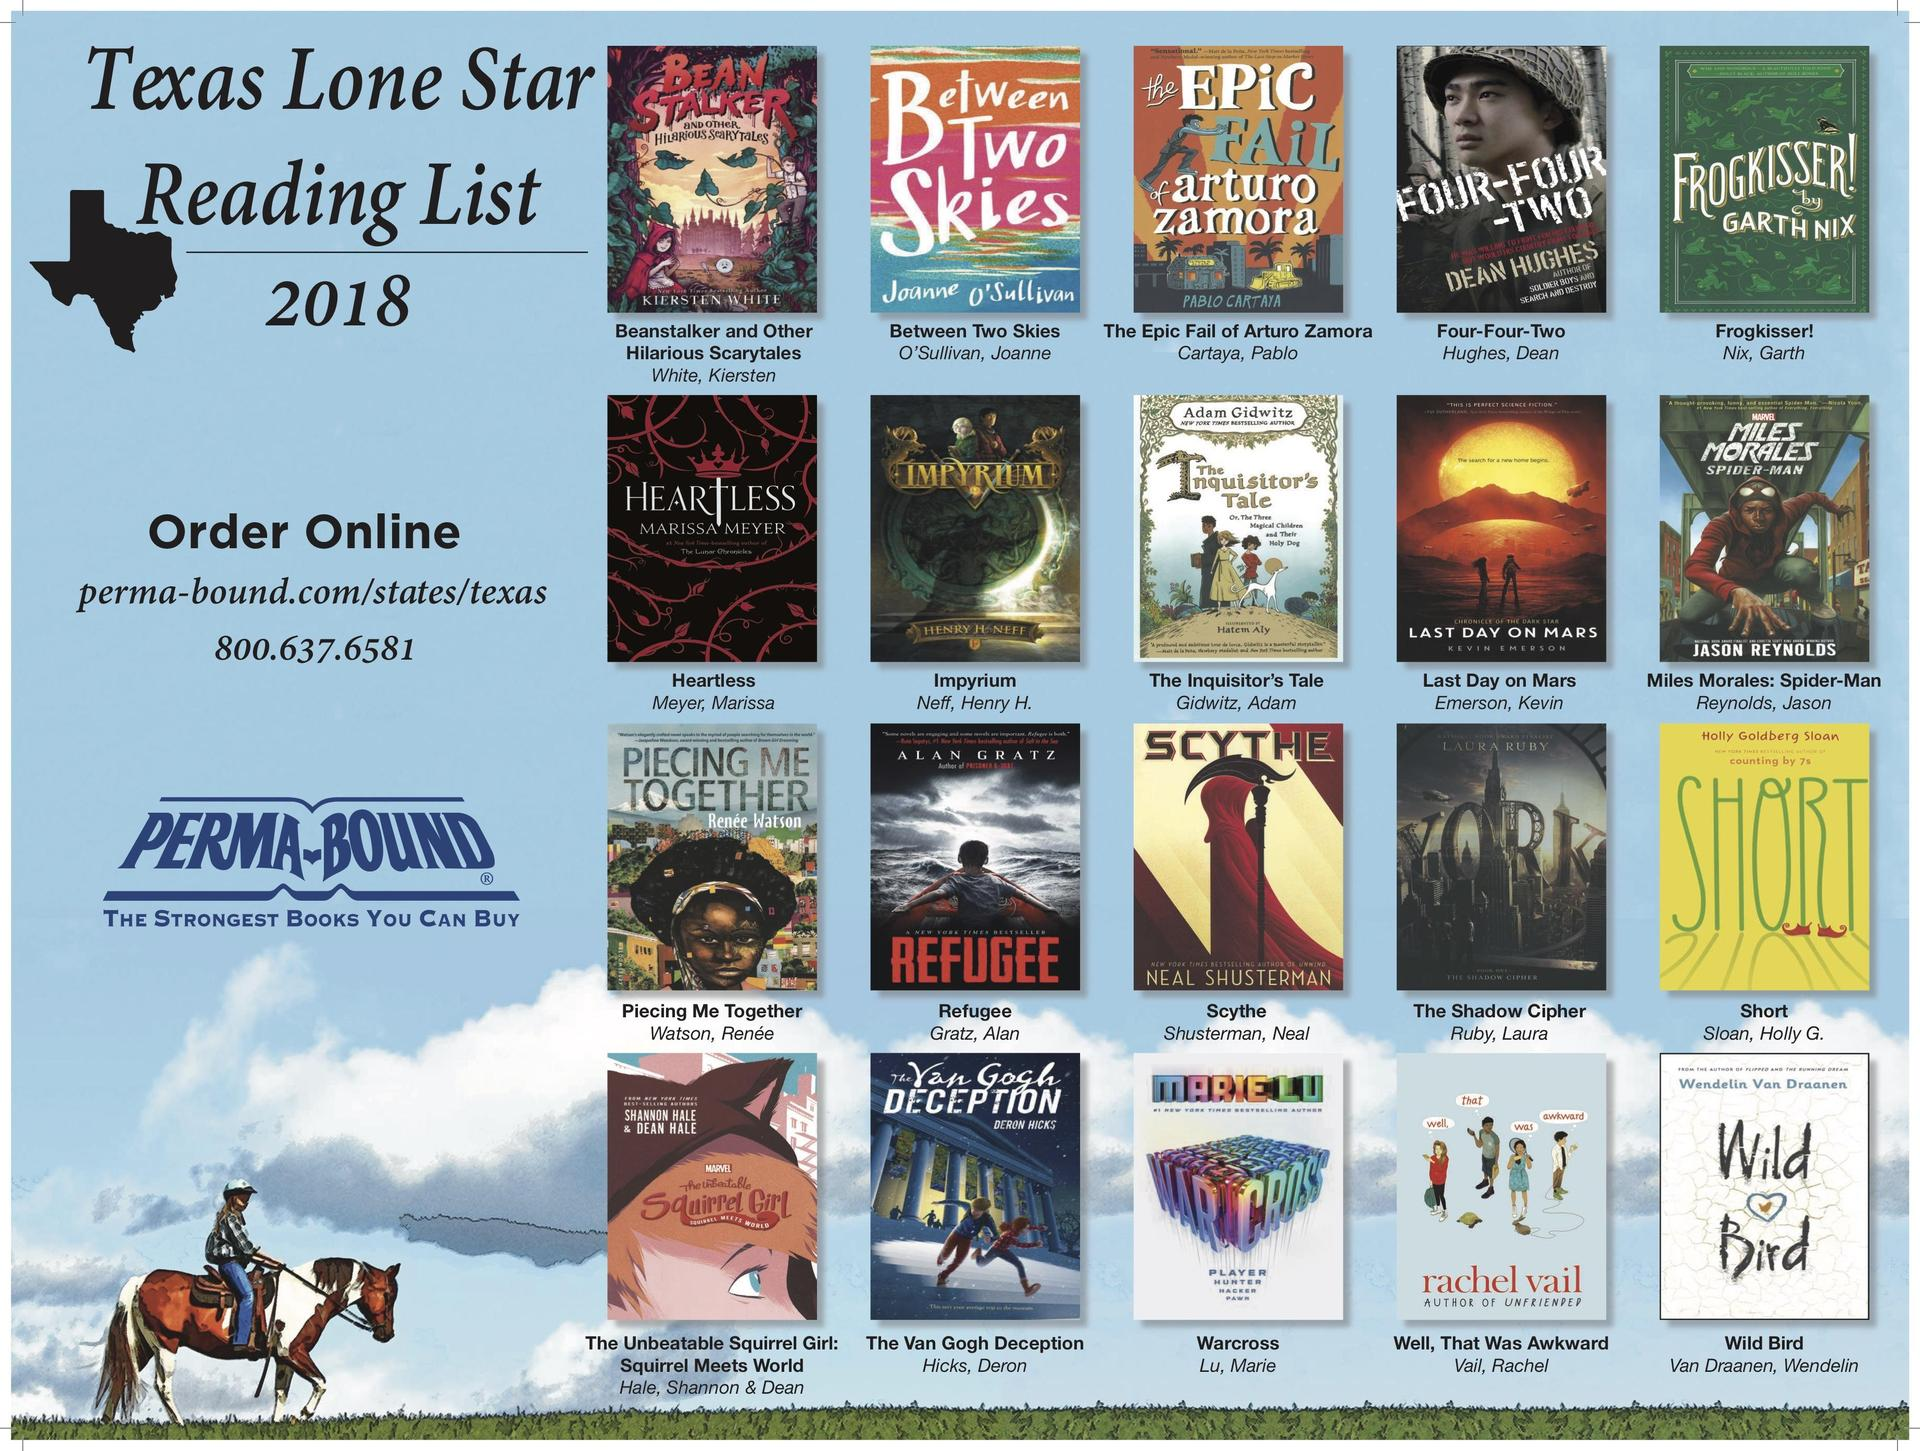 2018 Texas Lone Star Reading List